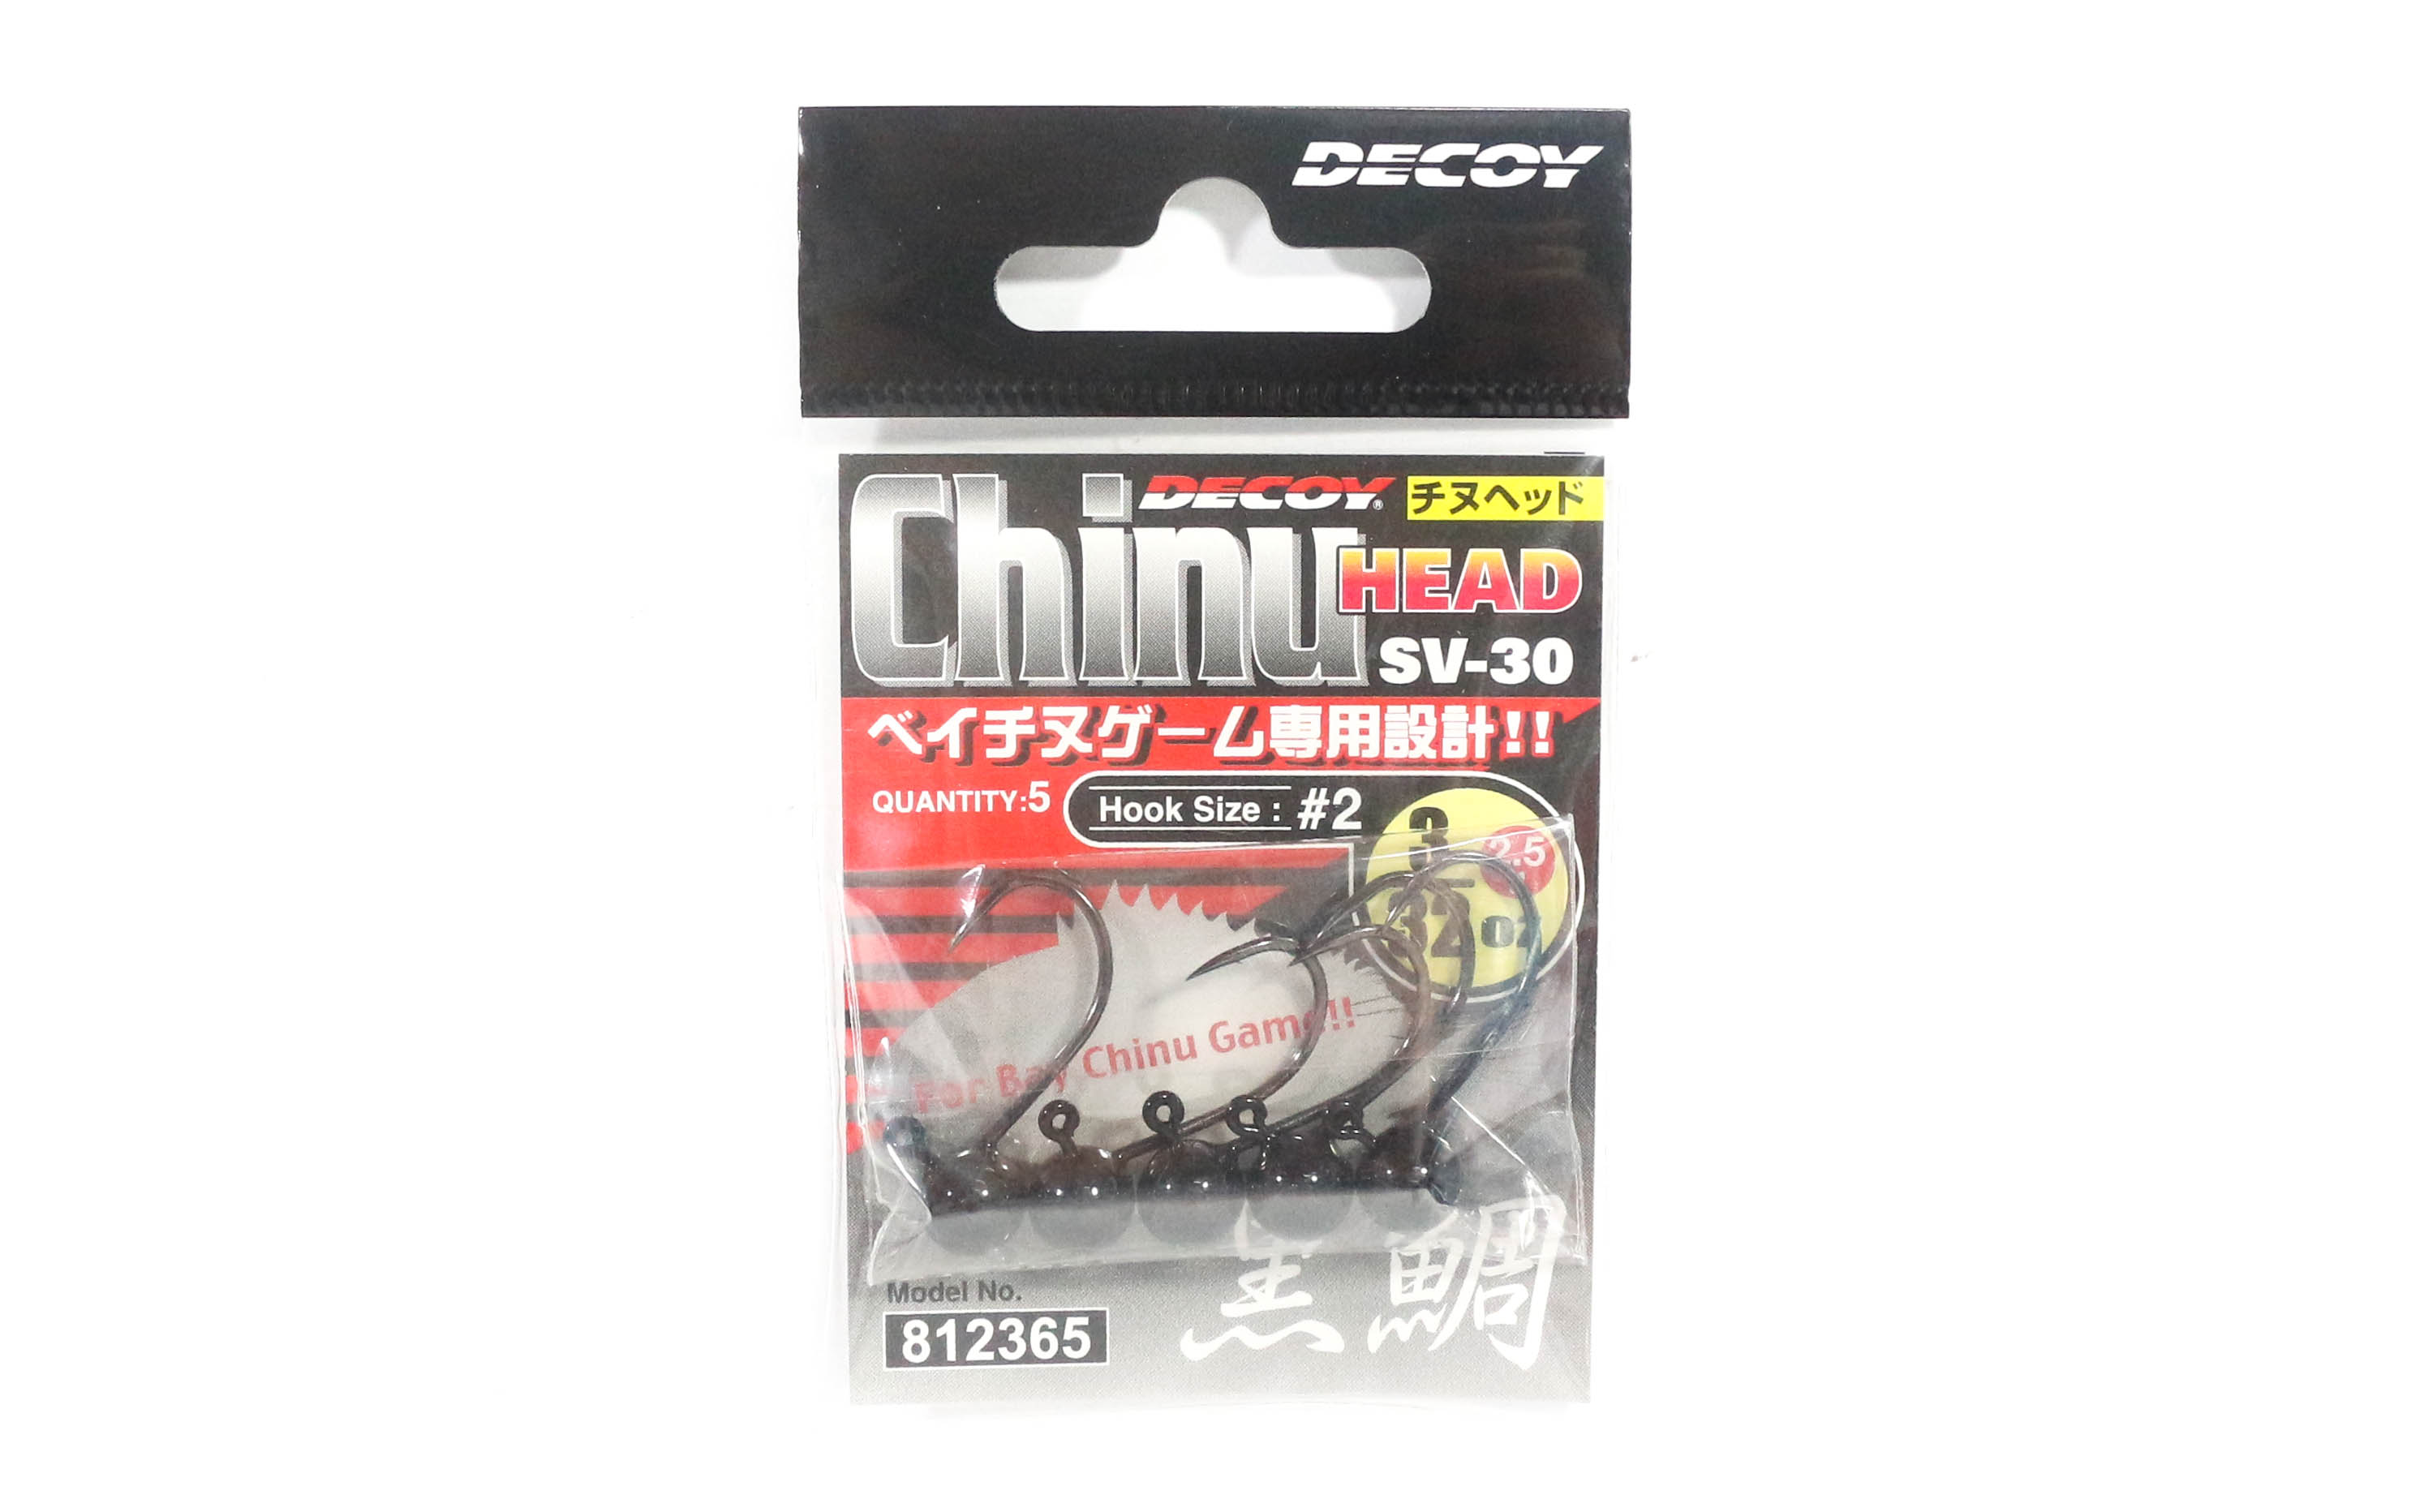 Decoy SV-30 Jig Head Chinu Head Heavy Duty Hook Size 2 , 3/32 oz (2365)